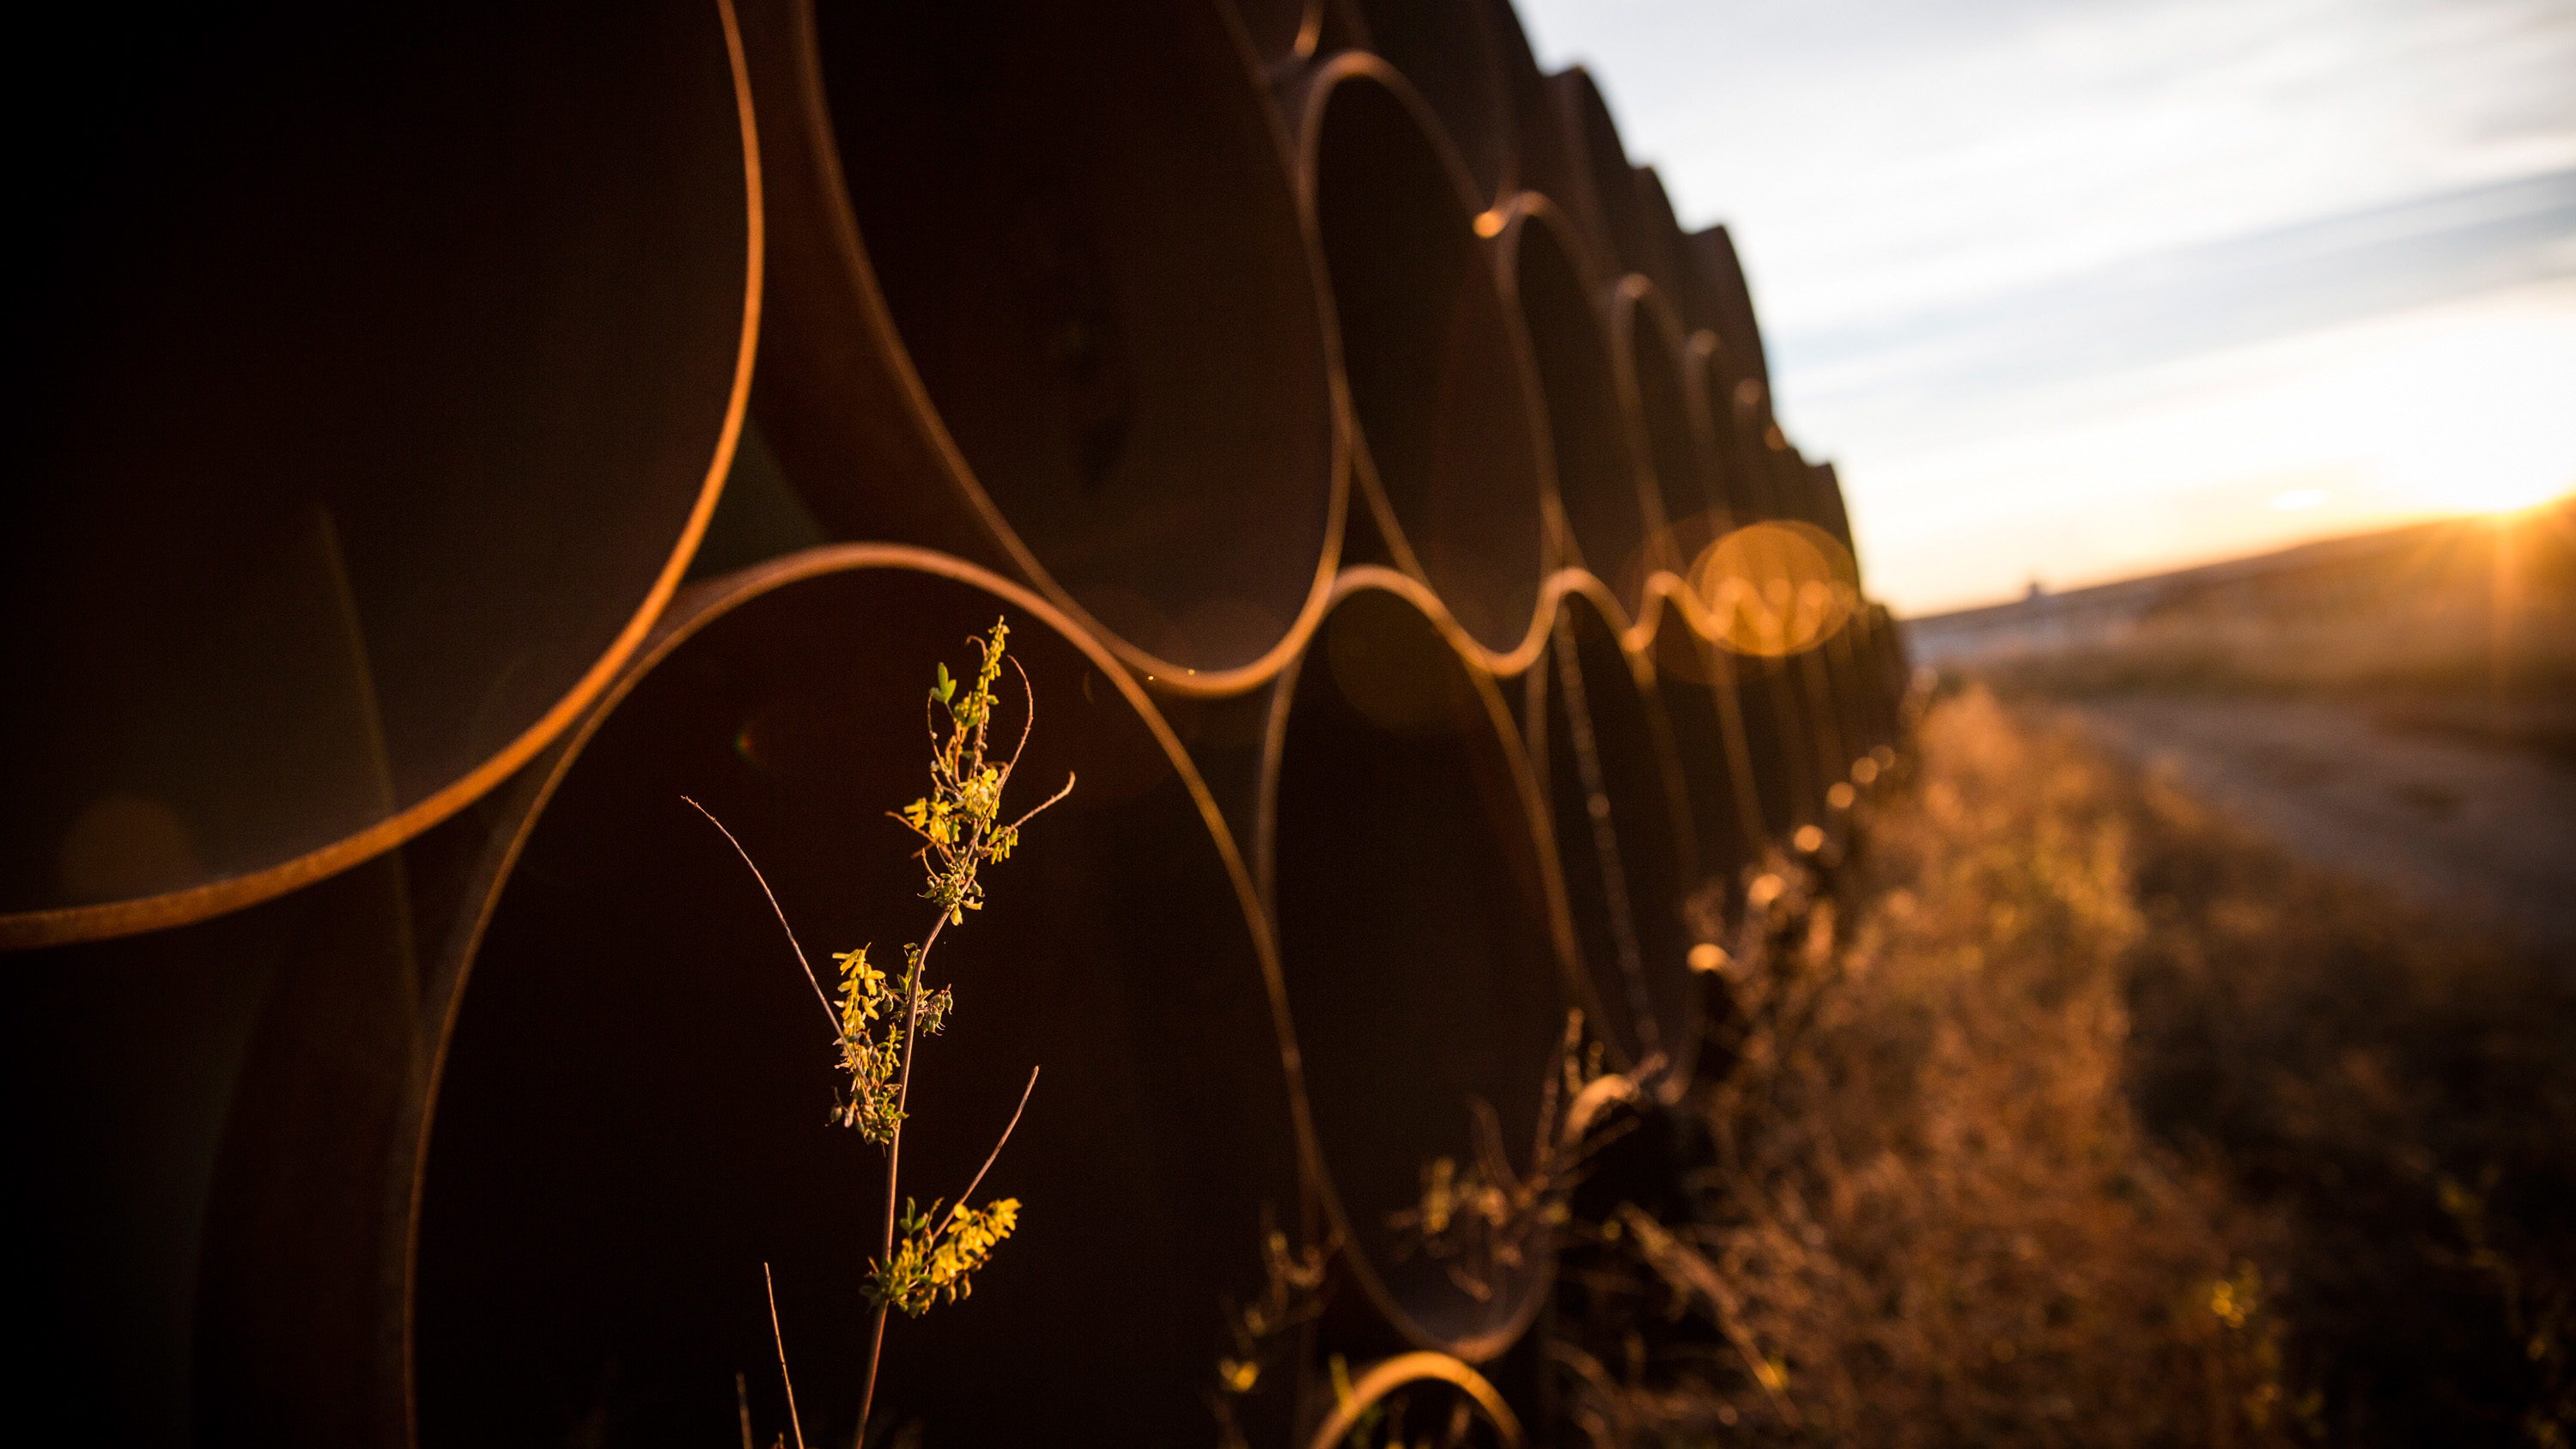 Commentary: Bringing the facts back to Keystone XL